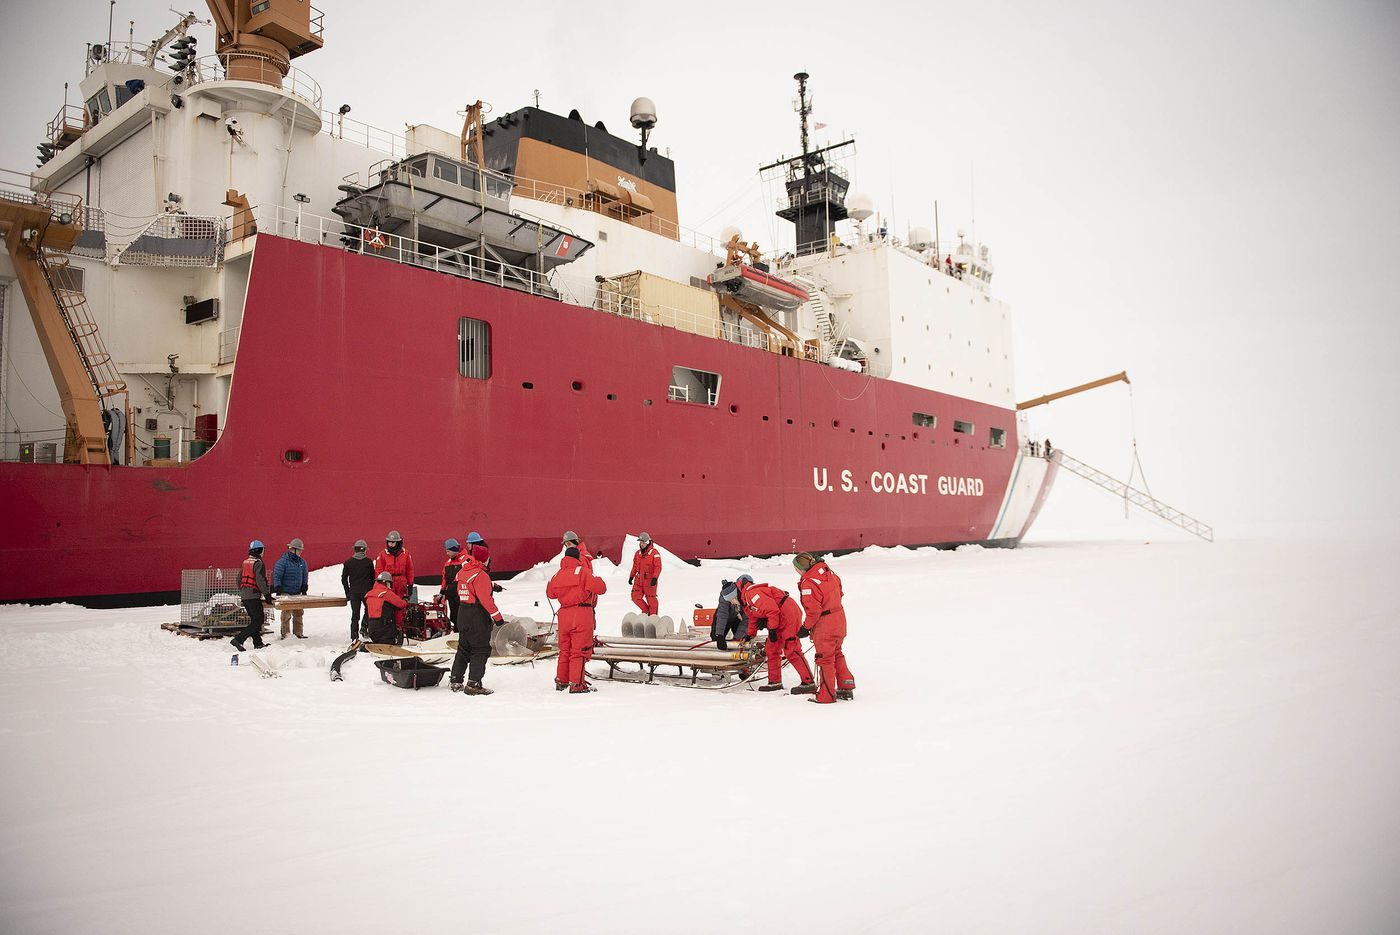 Scientists, engineers and crew members from the U.S. Coast Guard Cutter Healy prepare to unload gear on Oct. 2, 2018, about 715 miles north of Barrow, Alaska, in the Arctic. (U.S. Coast Guard photo by Senior Chief Petty Officer NyxoLyno Cangemi)